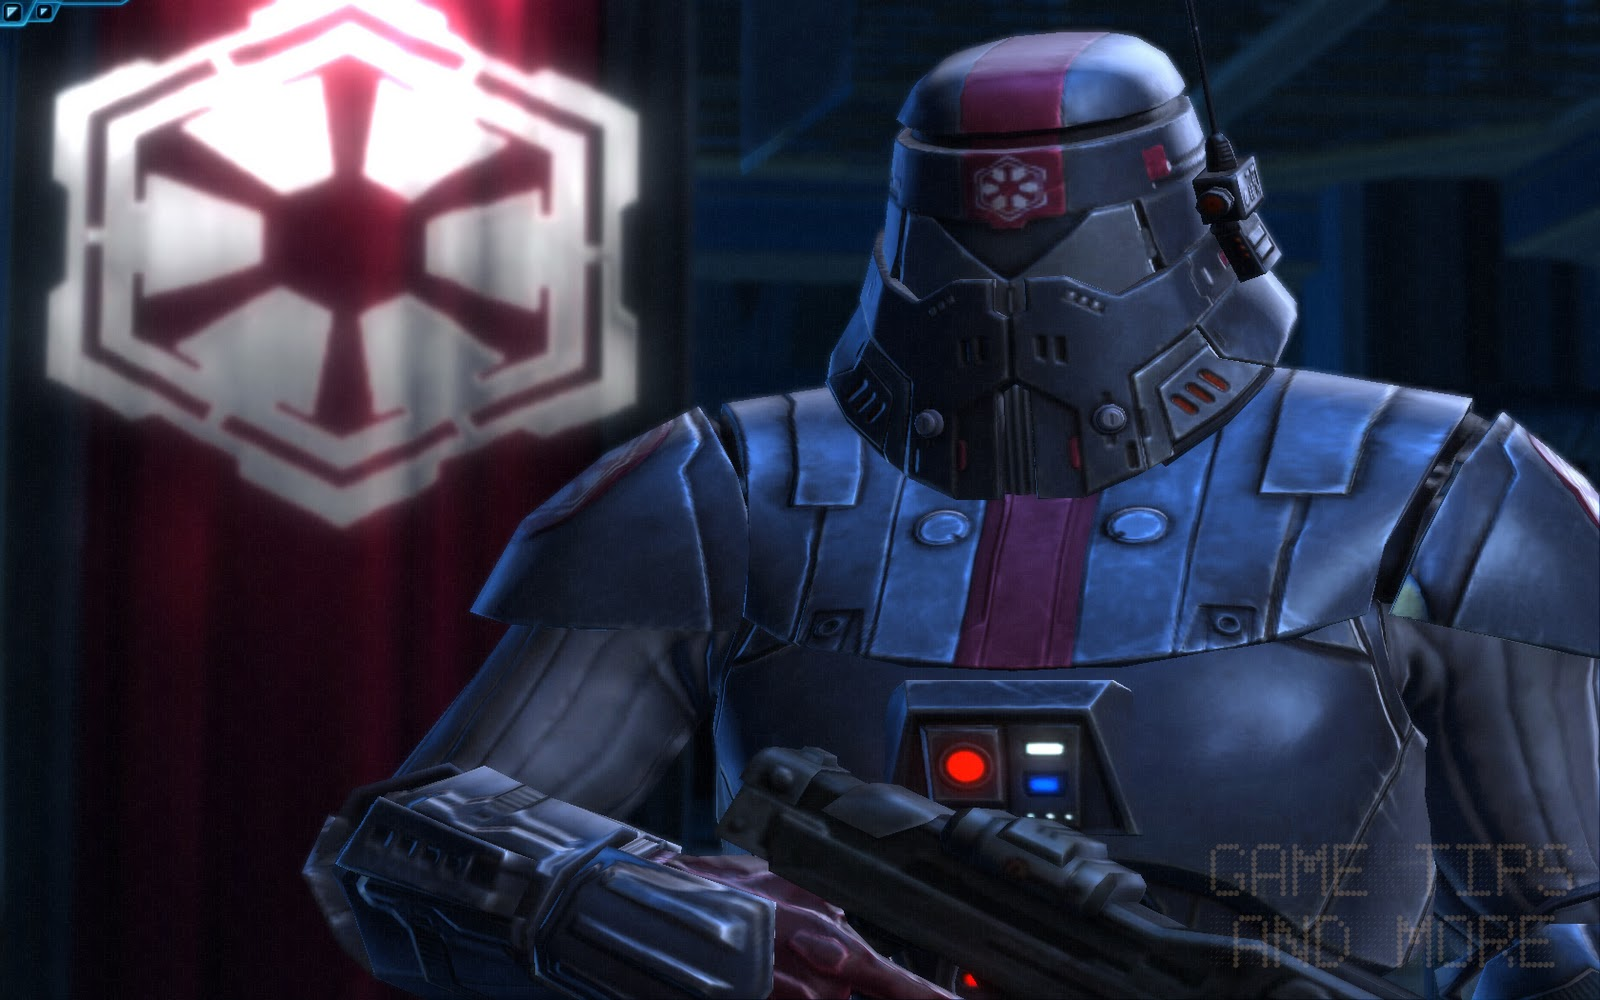 Star Wars Imperial Guard Wallpaper Star wars the old republic 1600x1000